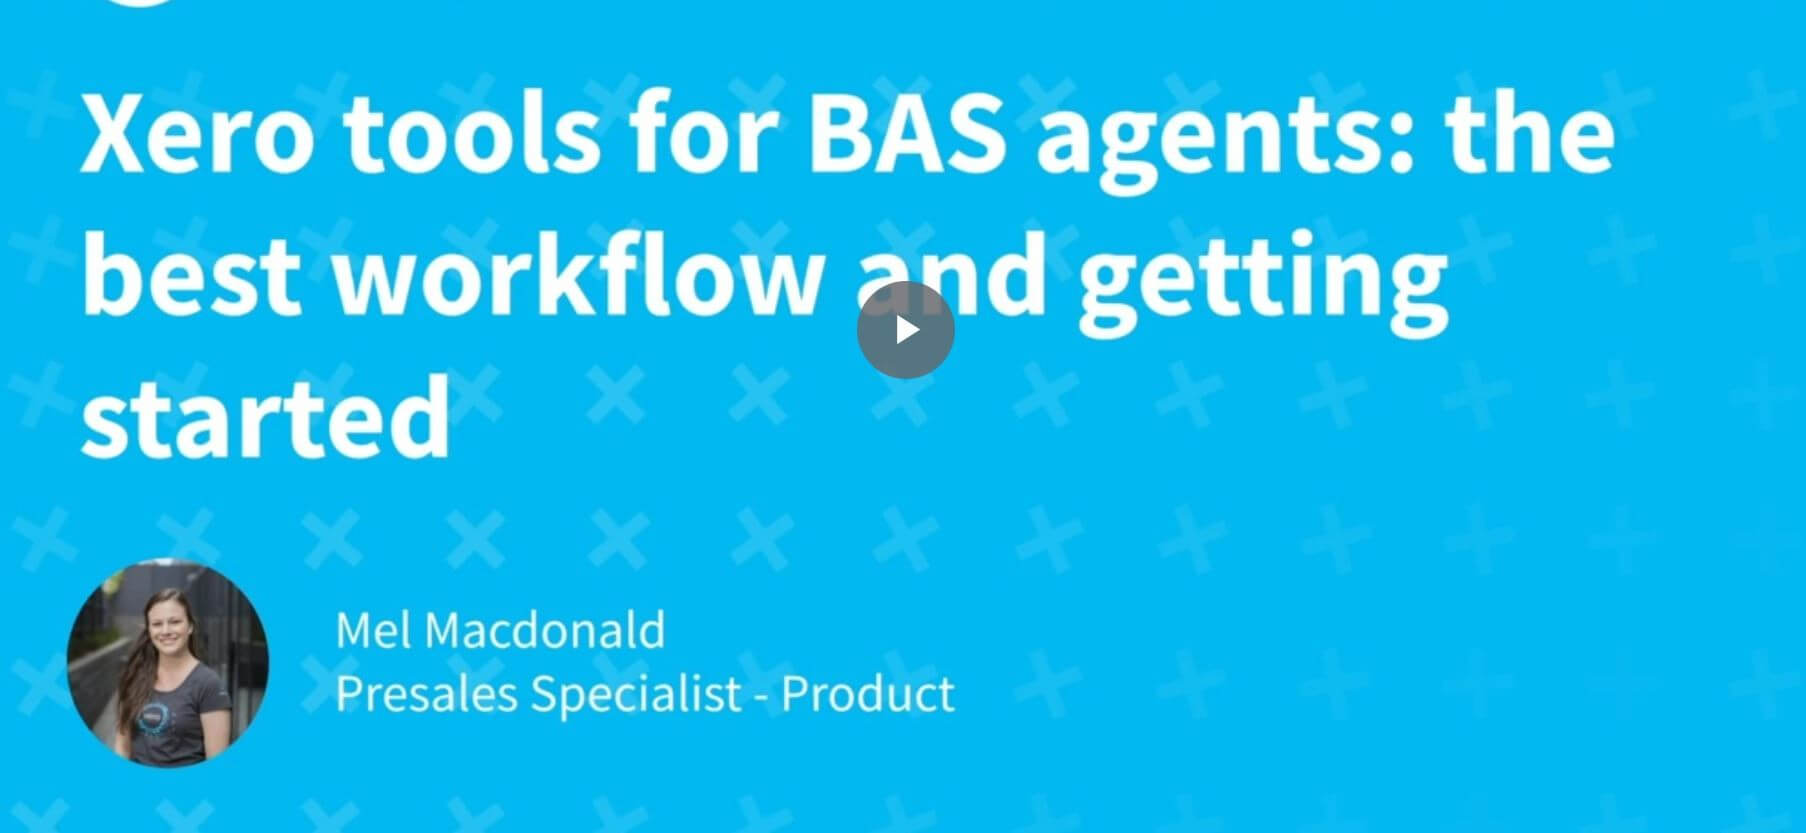 Xero Tools for BAS Agents